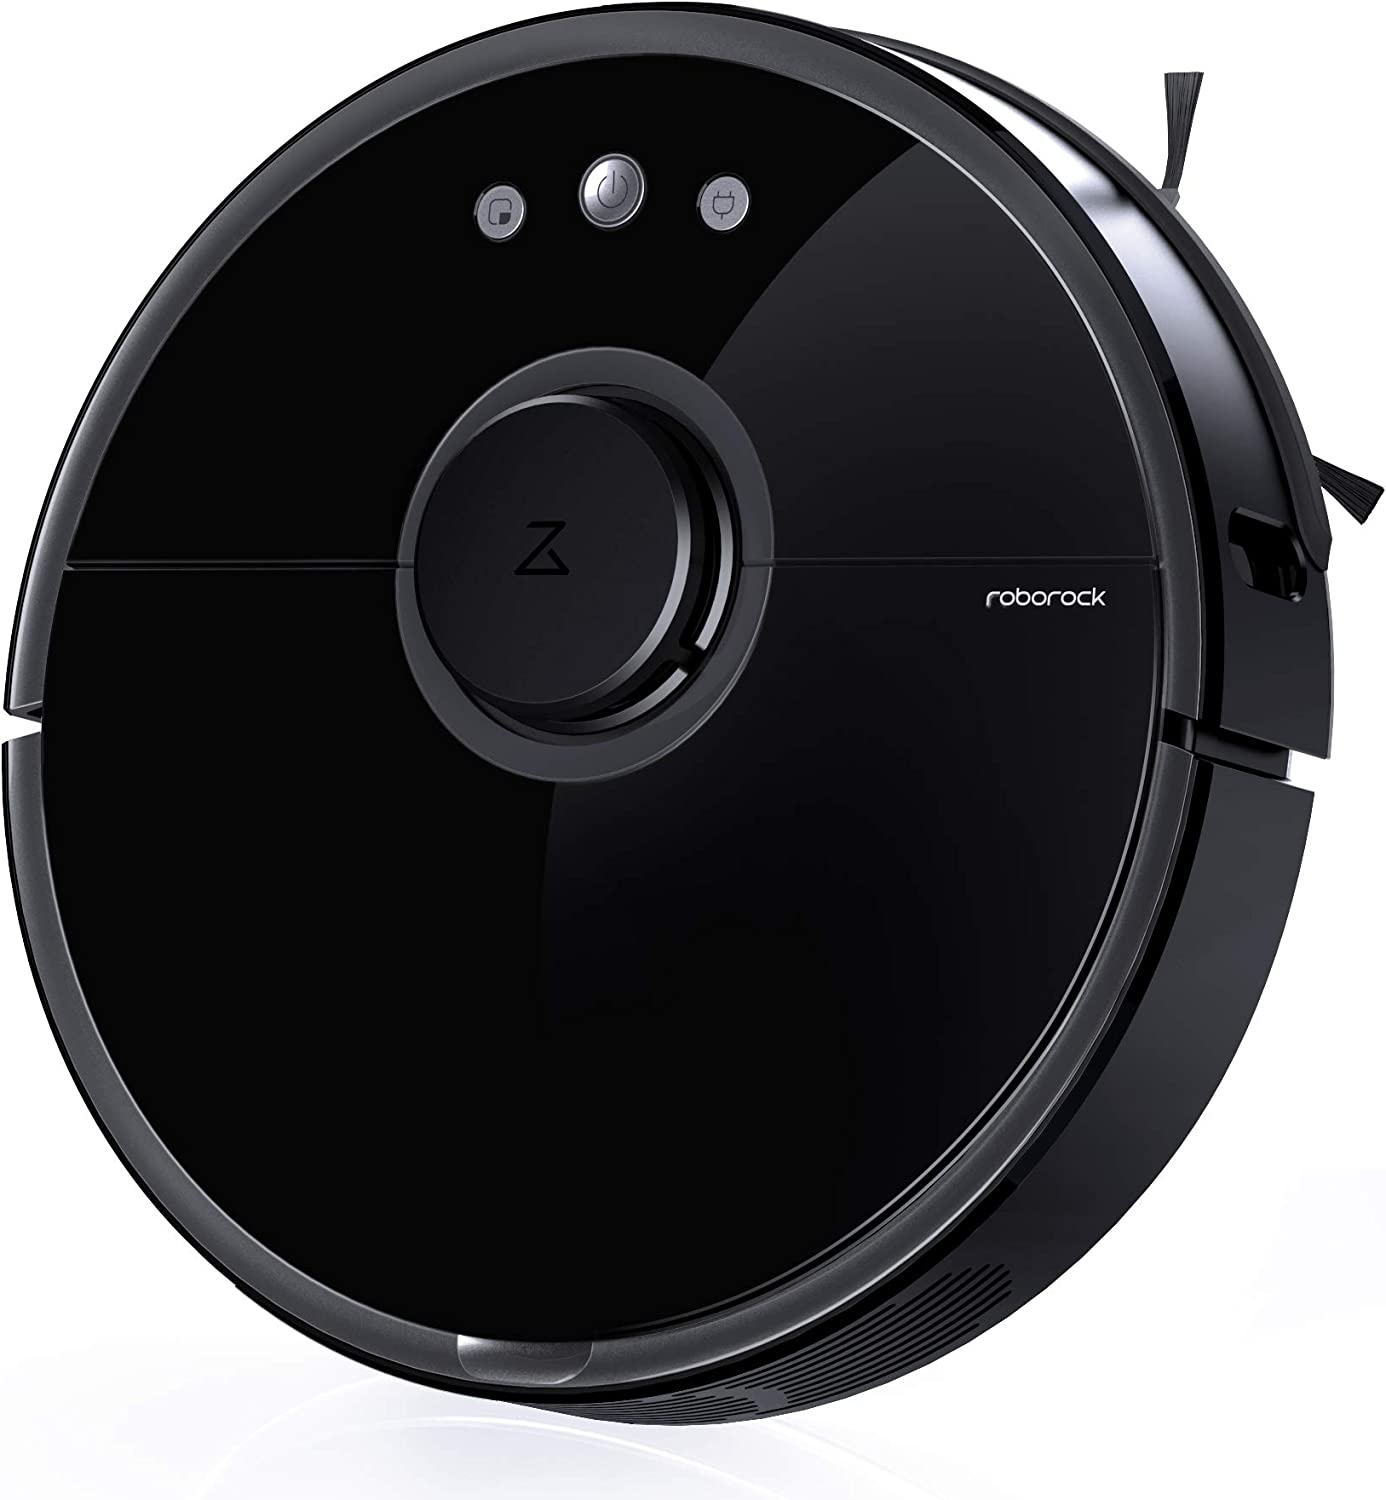 Best Robotic Vacuum for Pet Hair in 2020: Reviews & Buying Guide 7